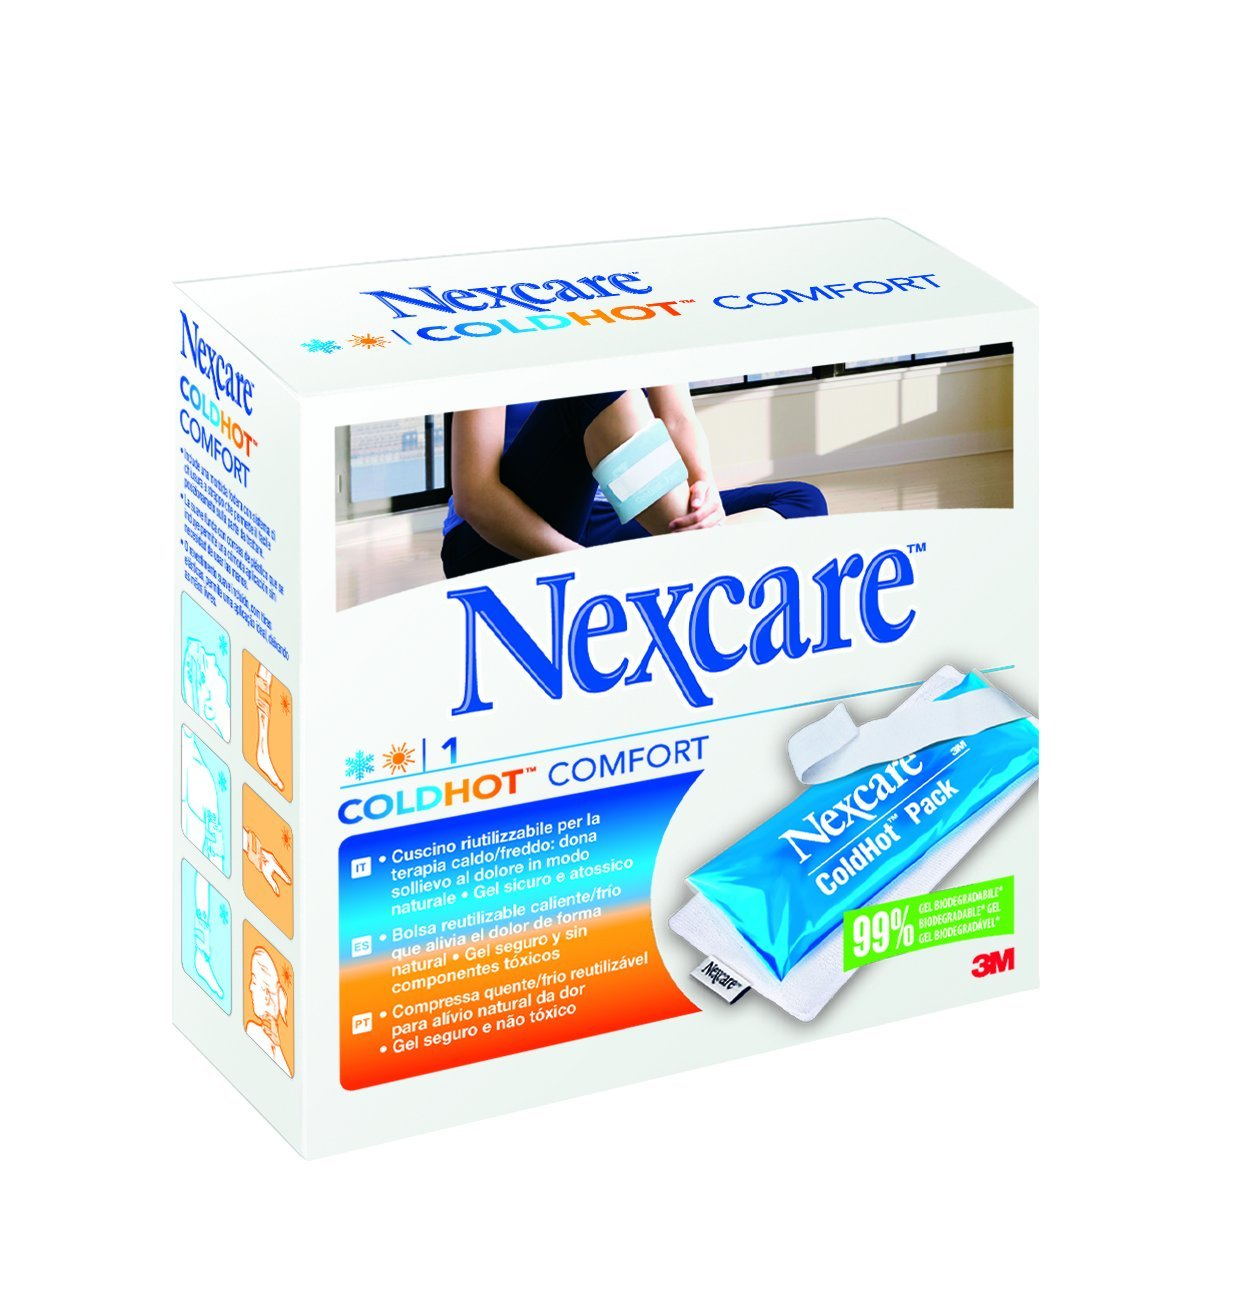 Amazon.com: Nexcare Coldhot Comfort10x26,5: Health ...